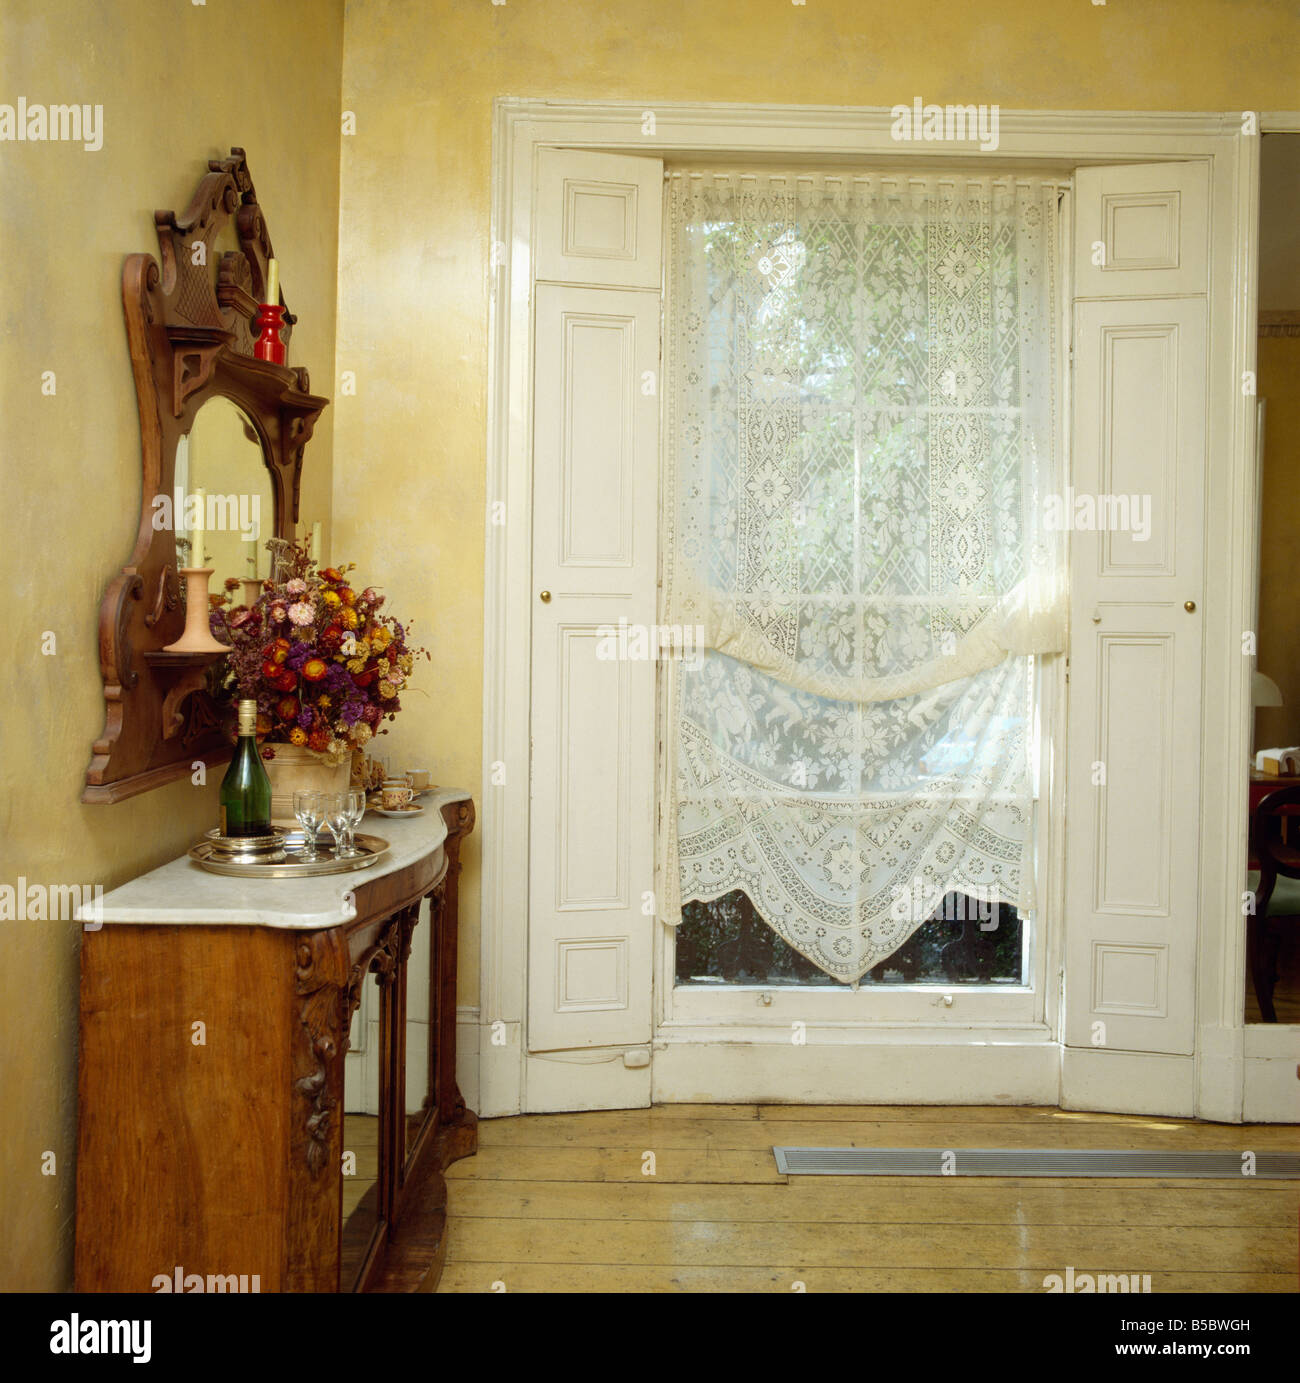 Window With White Lace Drapes And Shutters In Dining Room Ornate Mahogany Mirror Above